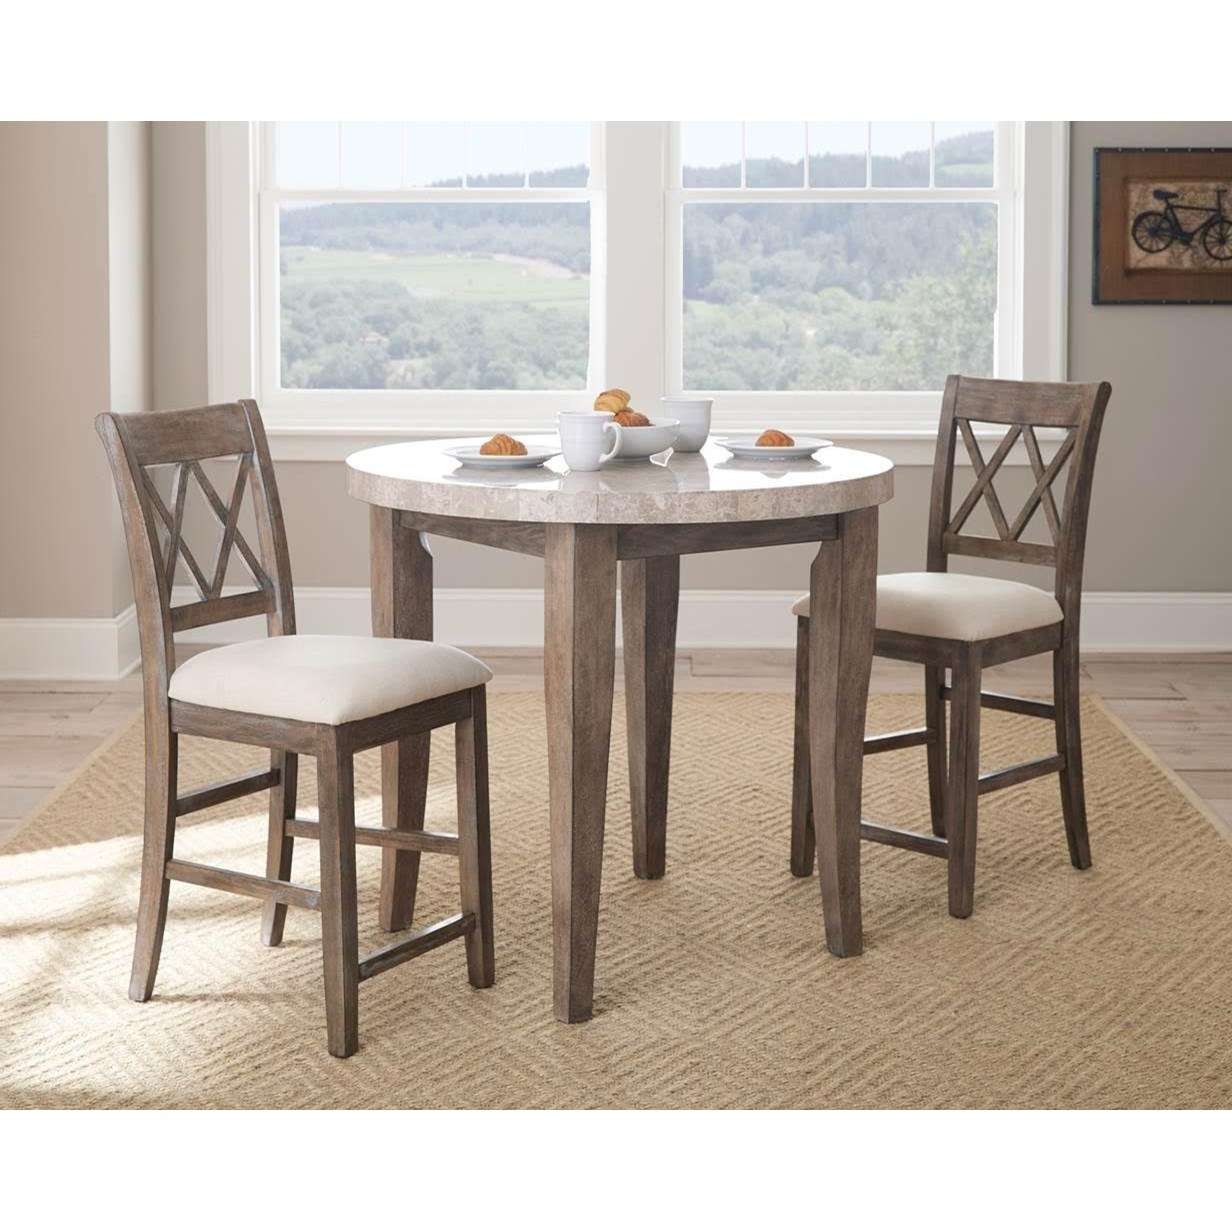 Steve Silver Franco 3 Piece Marble Counter Height Dining Set - Item Number: FR600WPT+2xCC